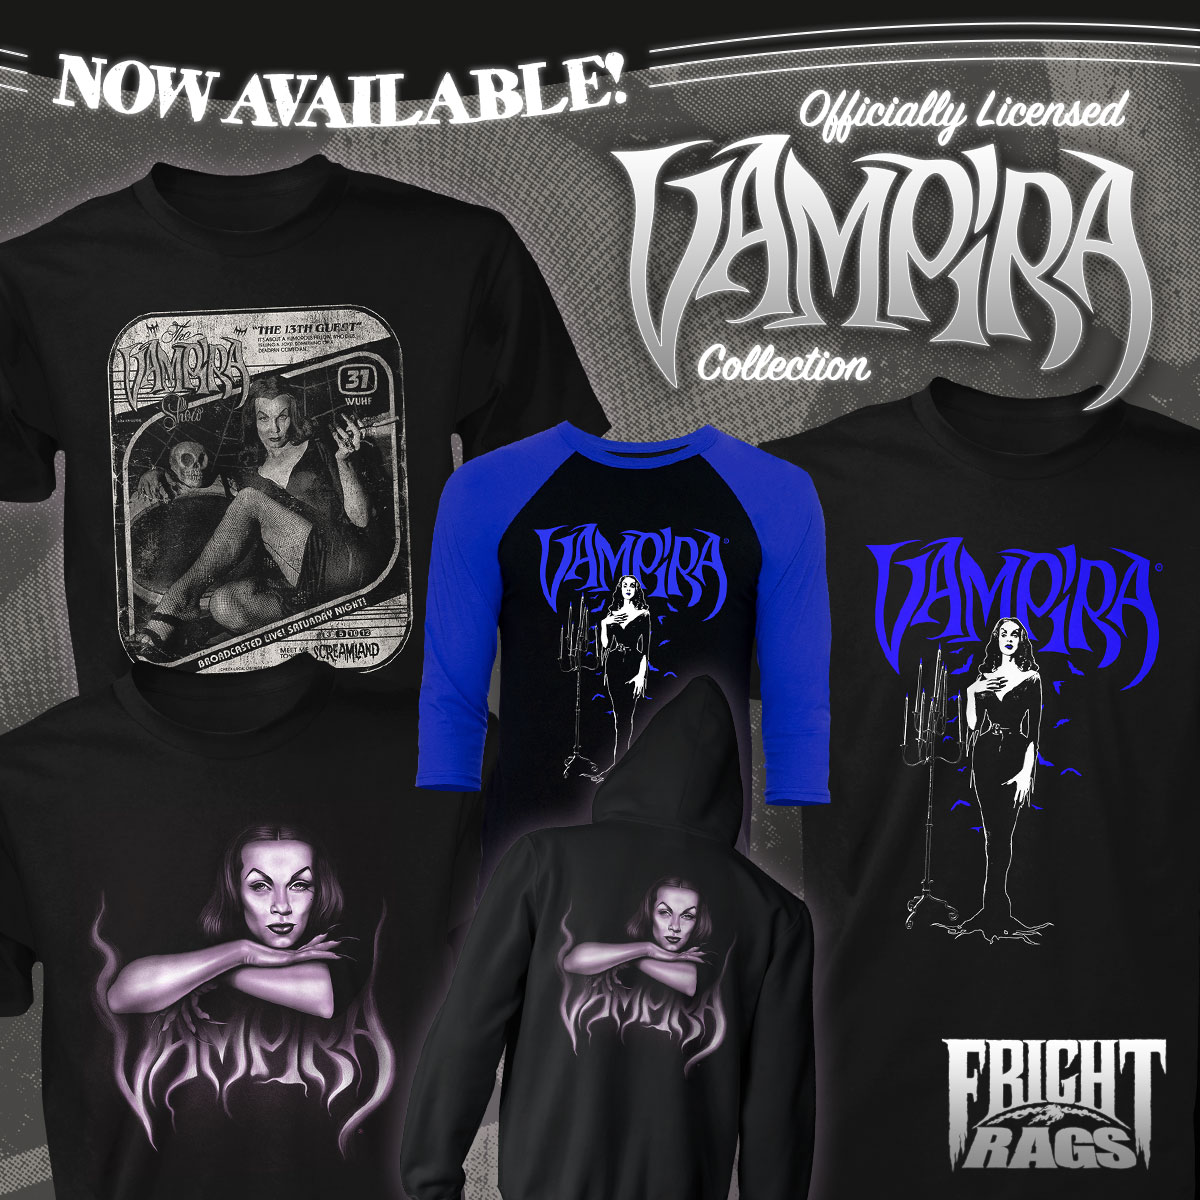 Fright-Rags Rings in the New Year with ROBOCOP, TEEN WOLF, and VAMPIRA Collections!